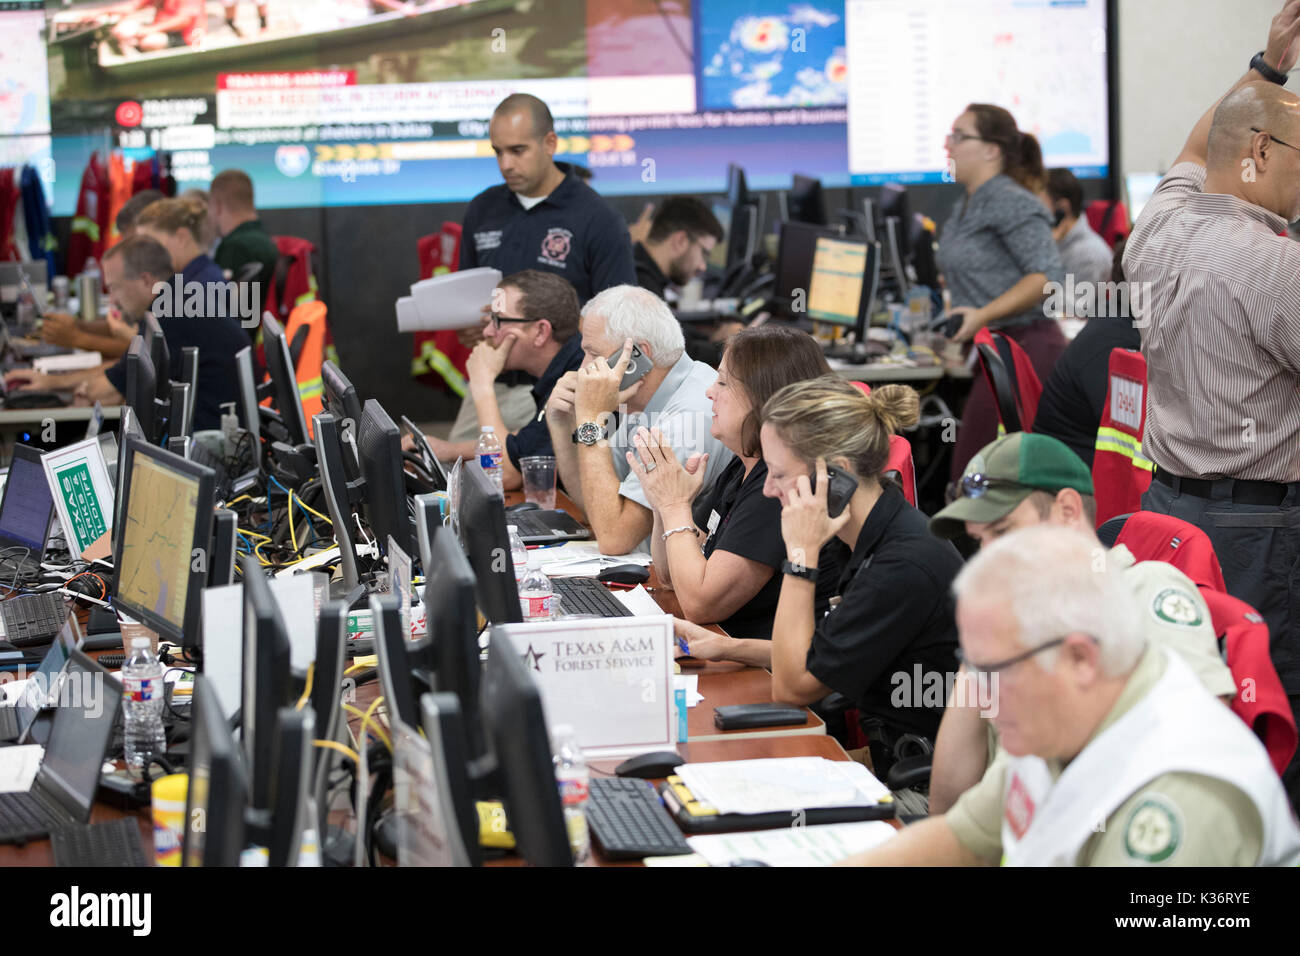 Austin, Texas USA Sept. 1, 2017: Emergency response officials and staff at the Texas Department of Public Safety Emergency Operations Center in Austin monitor the unfolding disaster of flooding in Southeast Texas from Hurricane Harvey. Credit: Bob Daemmrich/Alamy Live News - Stock Image